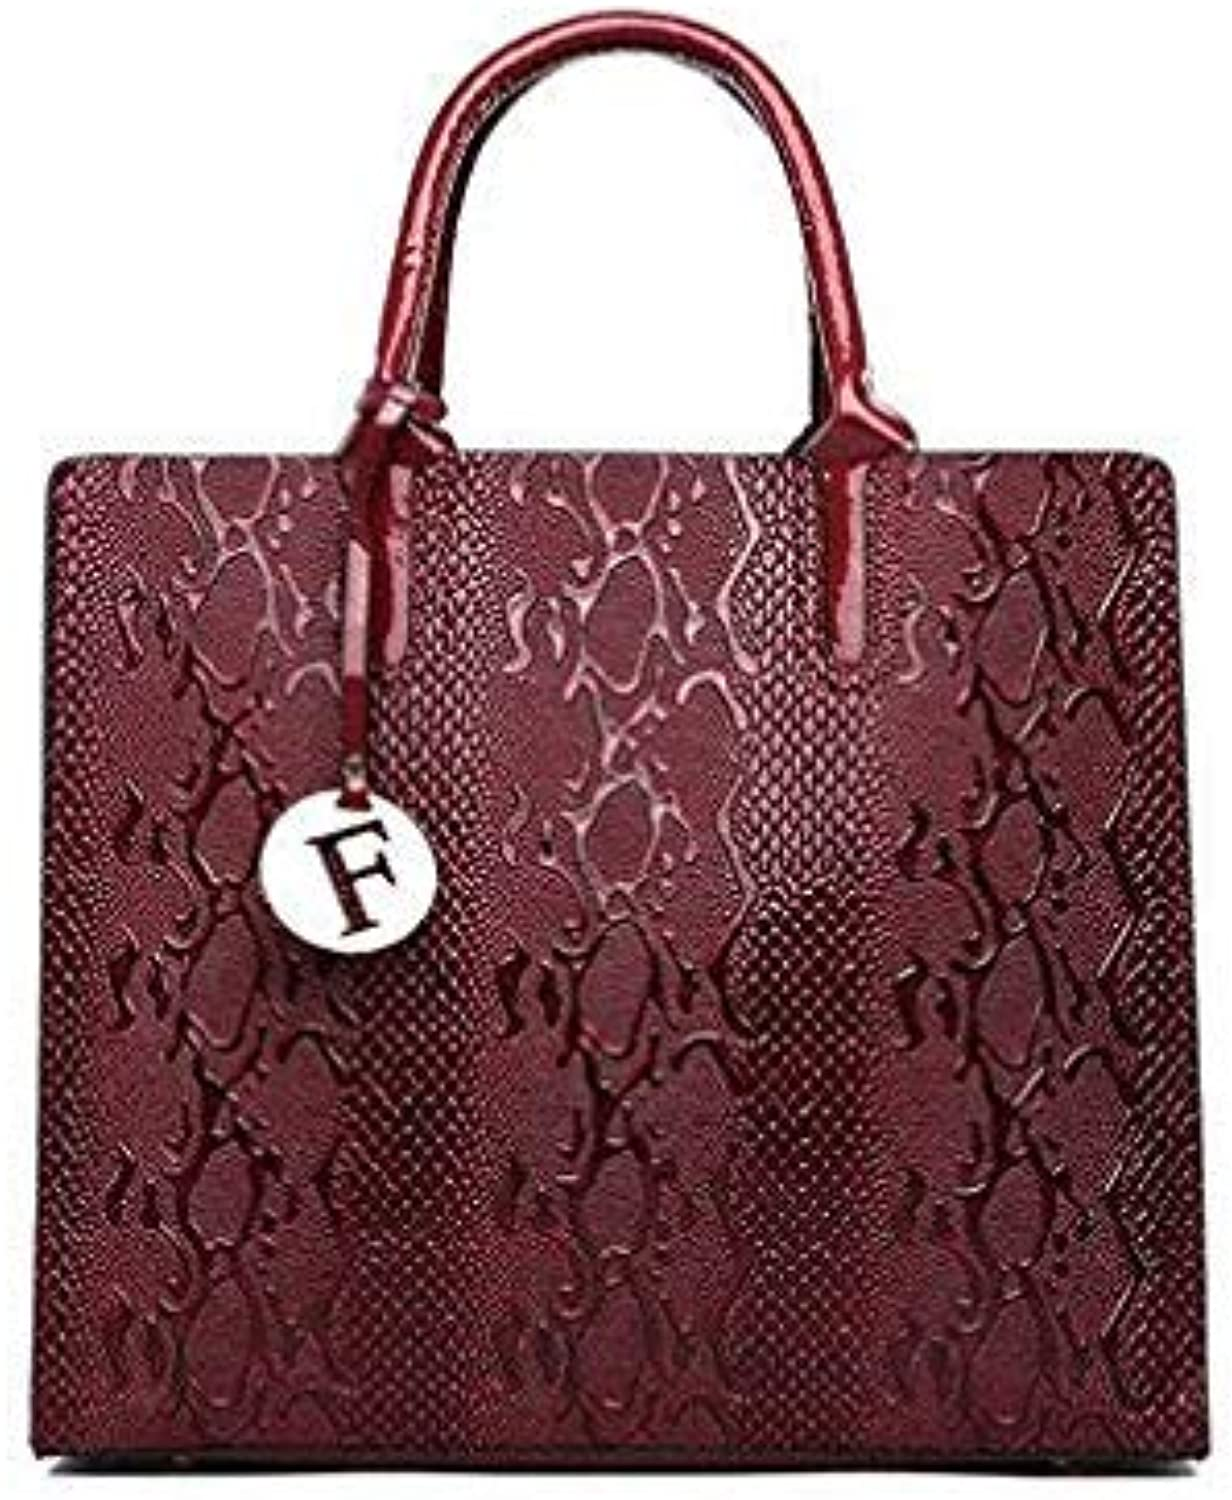 Bloomerang 3Pcs Snake Serpentine Women Handbags Set High Quality Pu Leather Shoulder Tote Bag+Chain Female Messenger Bags+Mini Clutch Purse color red-01 32cm